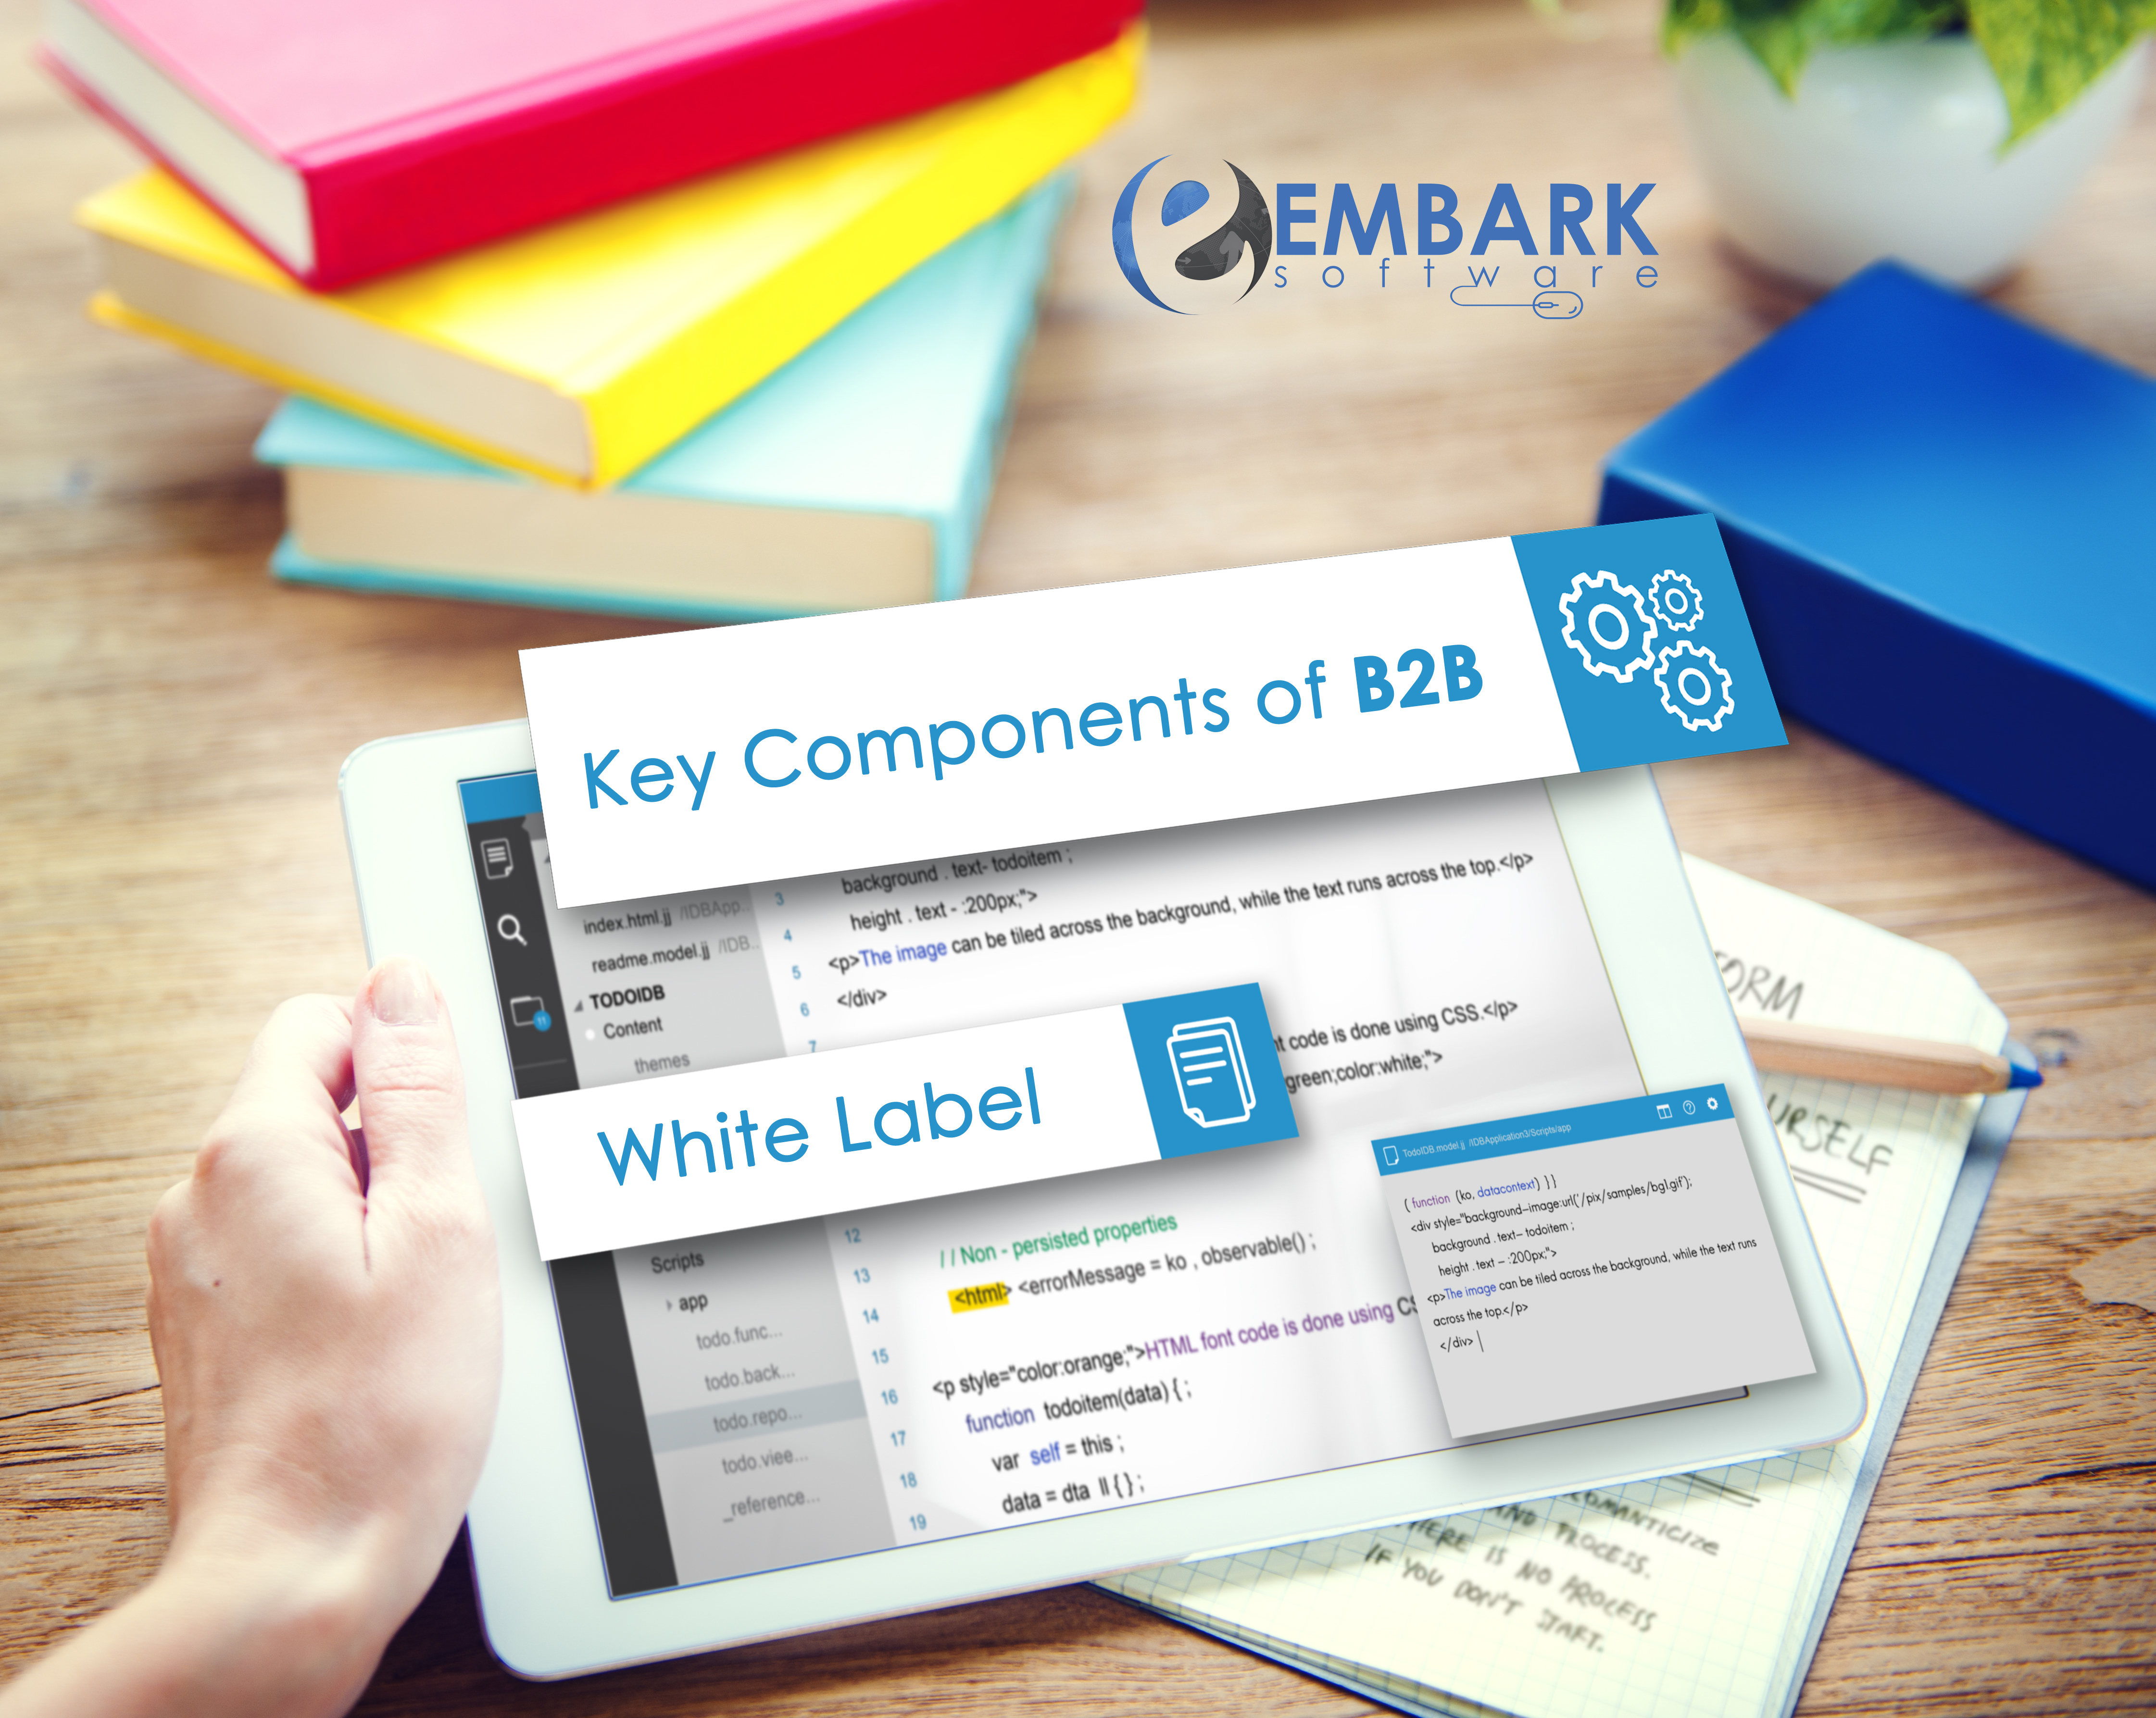 The Key Components of B2B White Label Increase Its Value